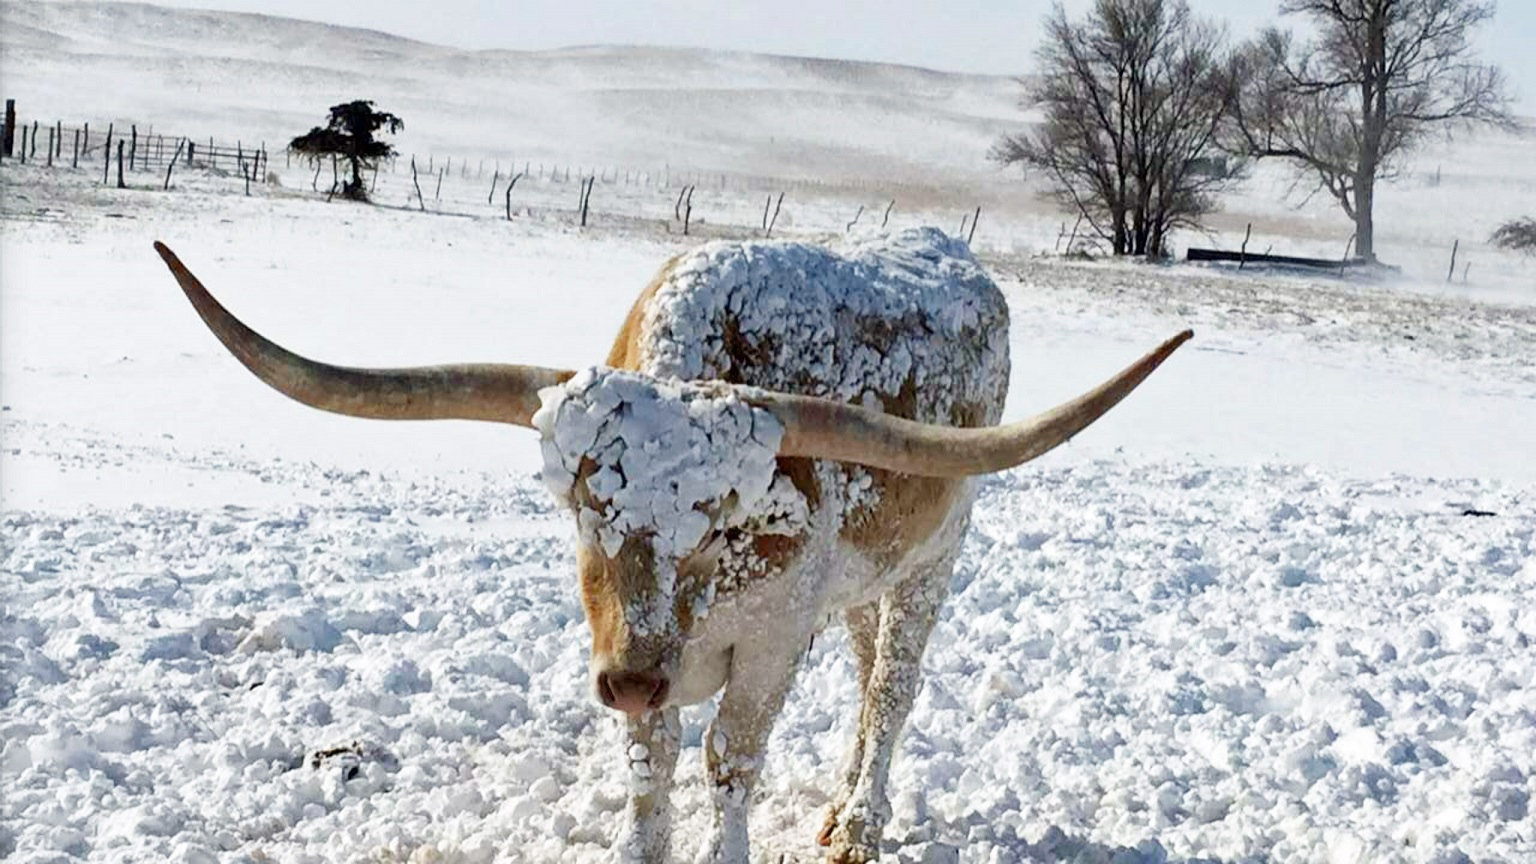 Cow in a snowy field